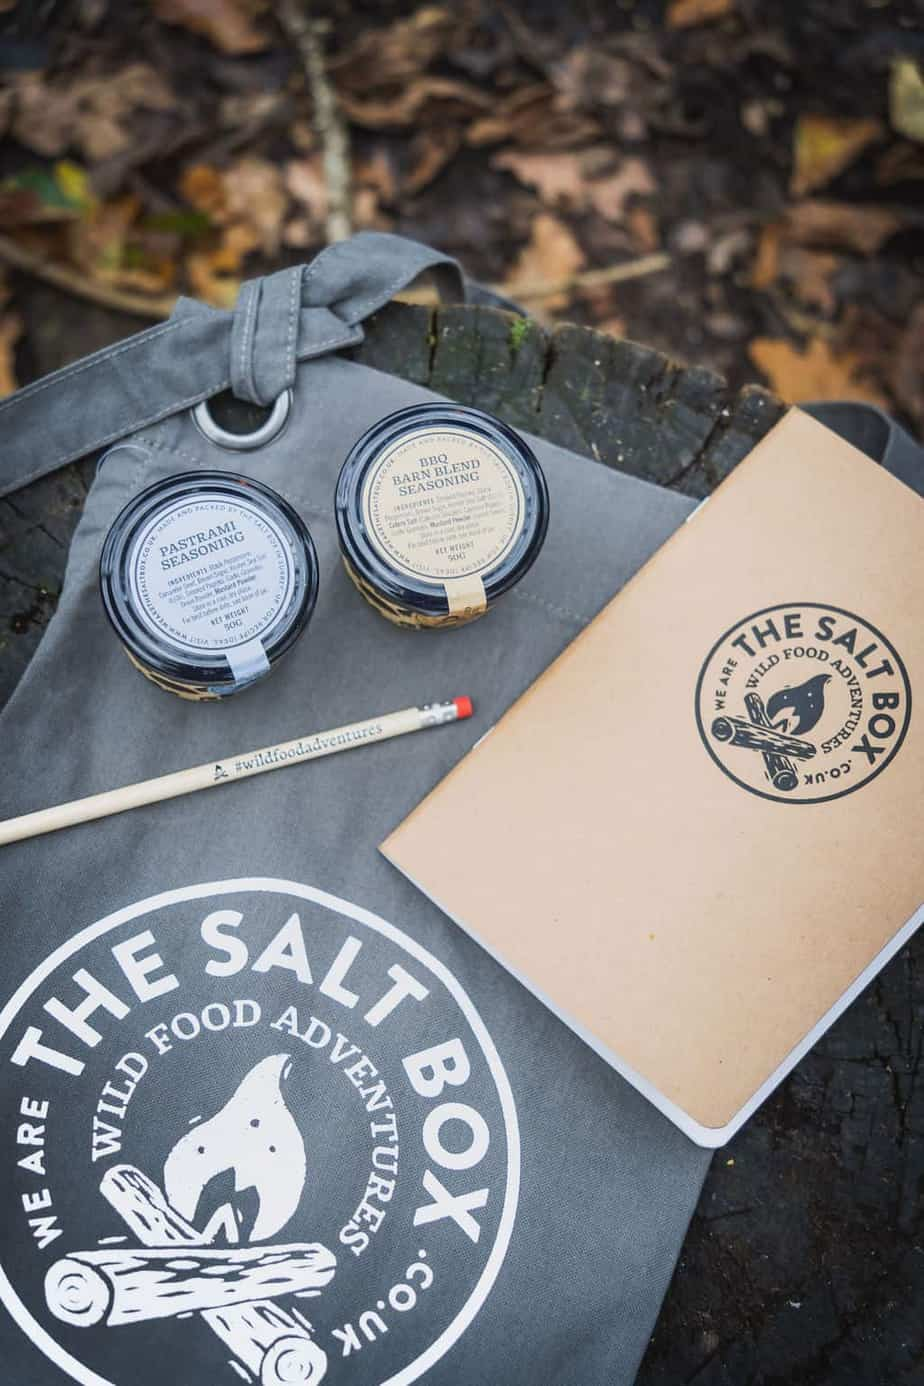 Salt Box Branded Products